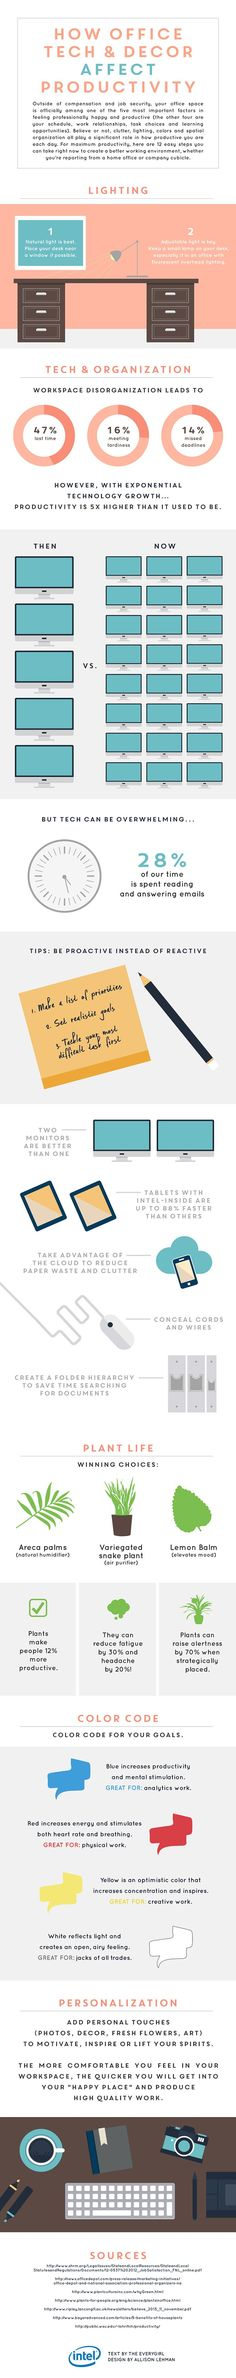 Reeeeally love this productivity boosters infographic, especially since I'm about to set up a work-from-home space at my house!